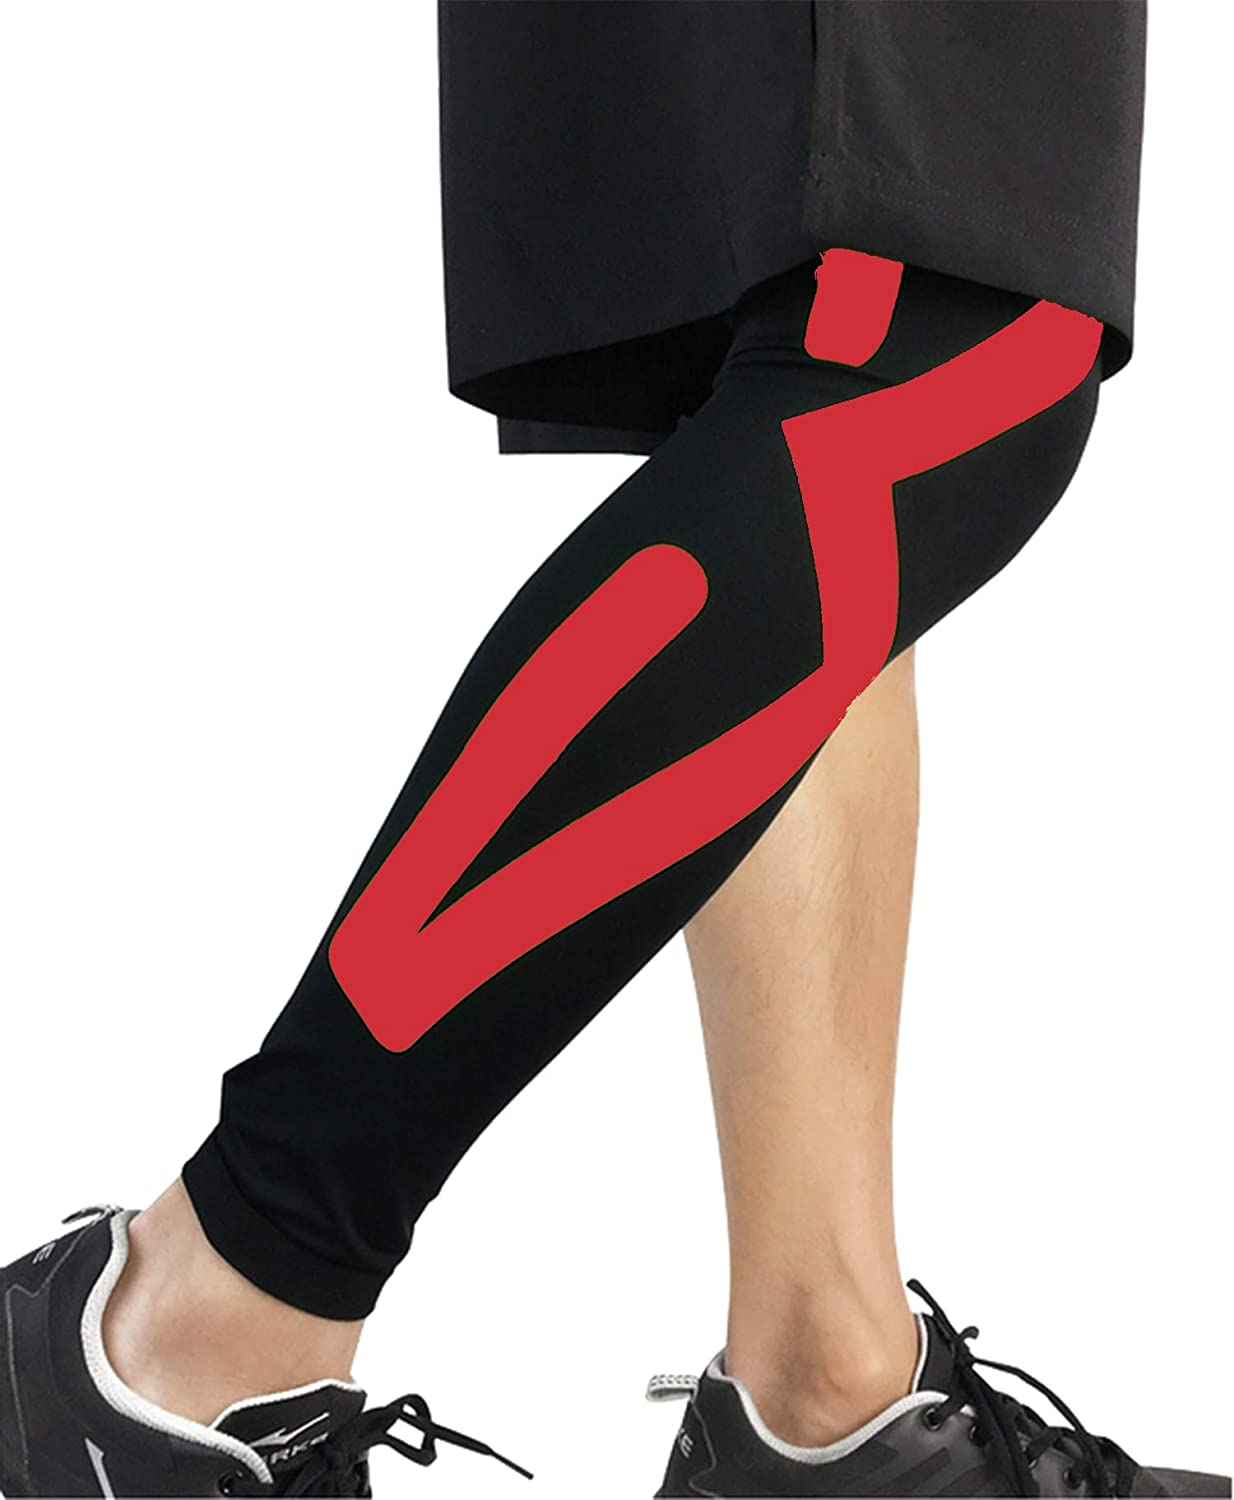 Exercise Knee Arthritis Pain Relief, Predecting The Patella, Energy Pressure Bar, Tights, Mountaineering, Running, Male Female, Red, Size  M, L, XL, 1 Pair